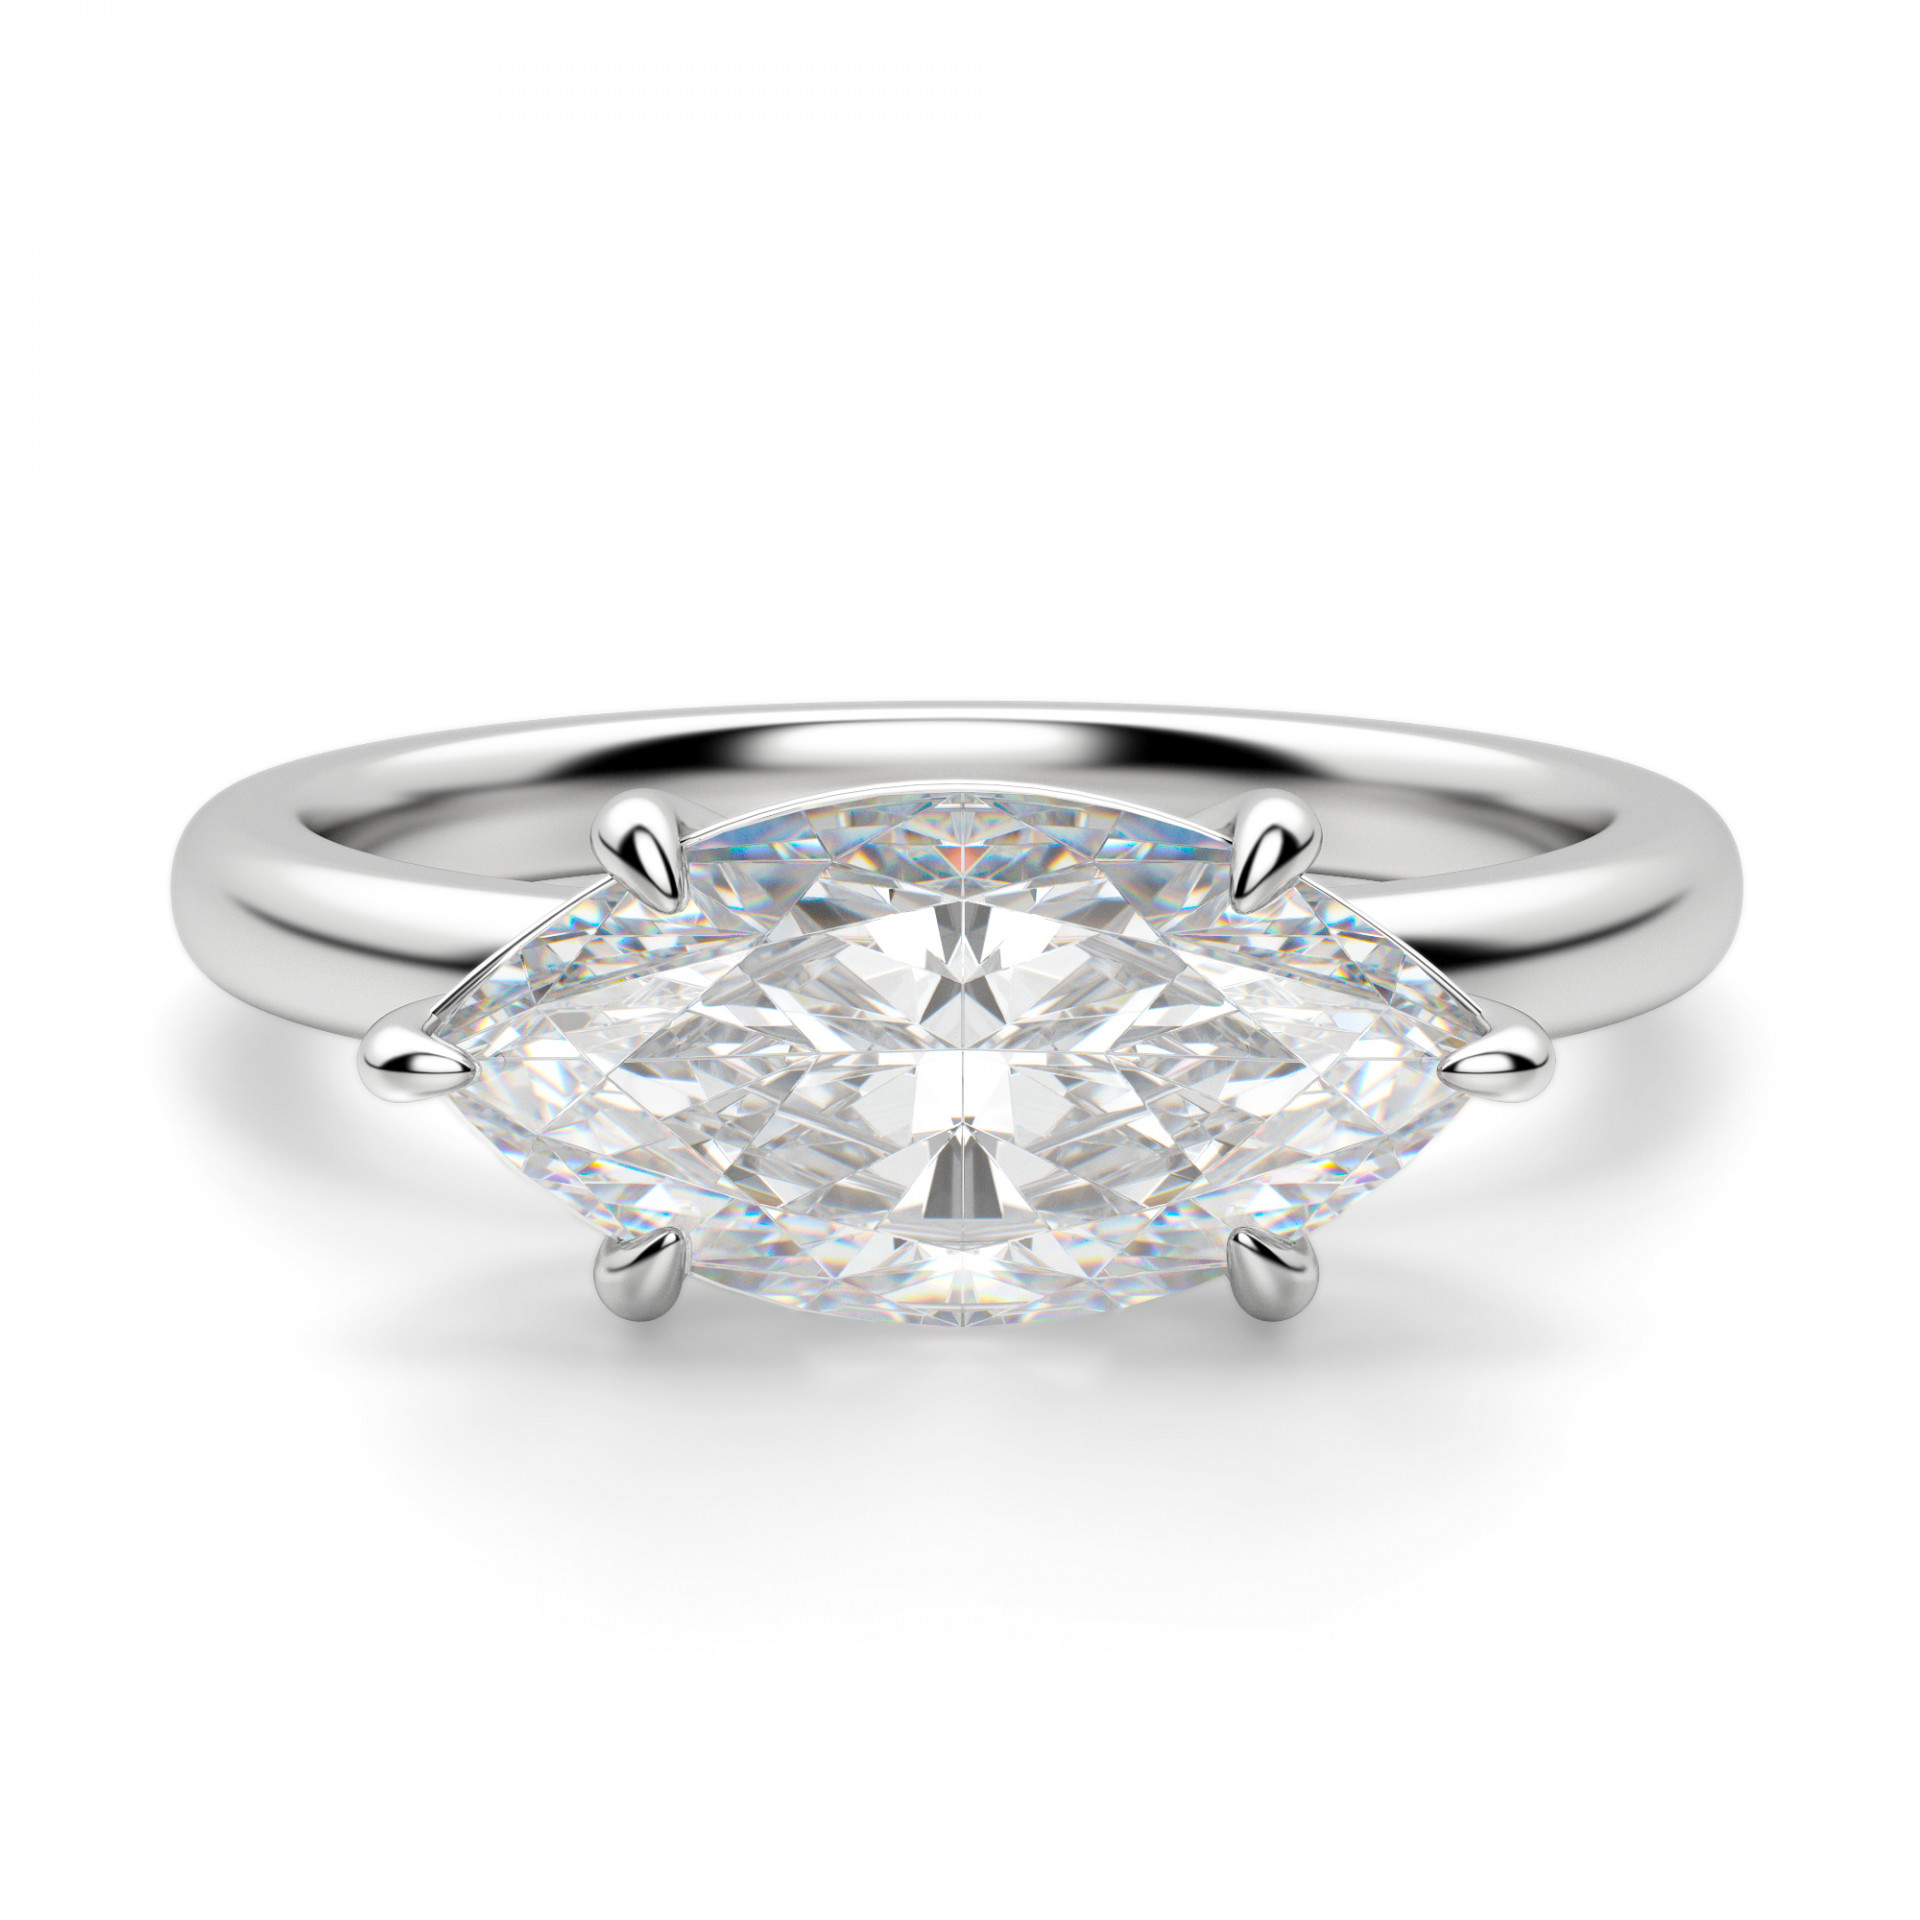 east west classic marquise cut engagement ring. Black Bedroom Furniture Sets. Home Design Ideas